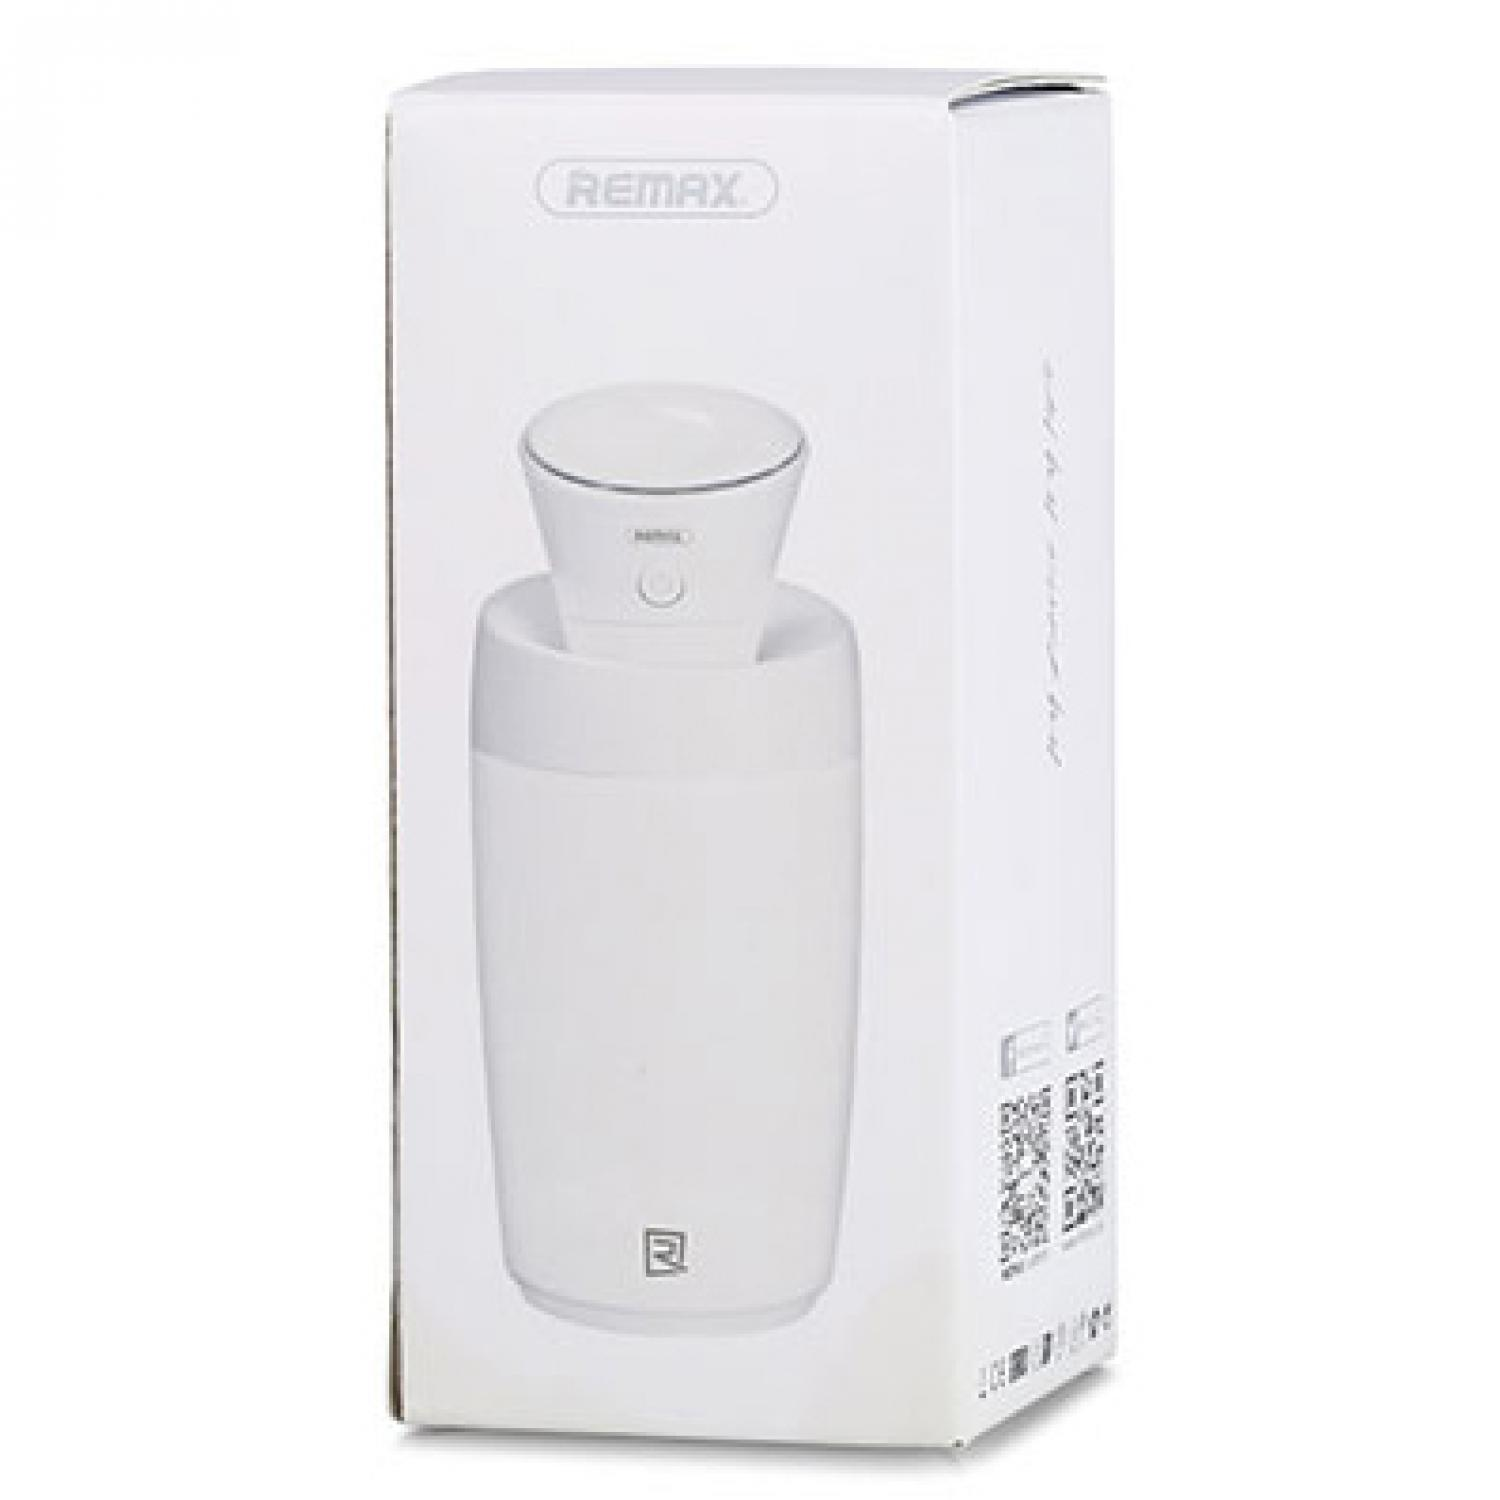 Remax Mini Humidifier Daffodil Series Rechargeable - RT-A300